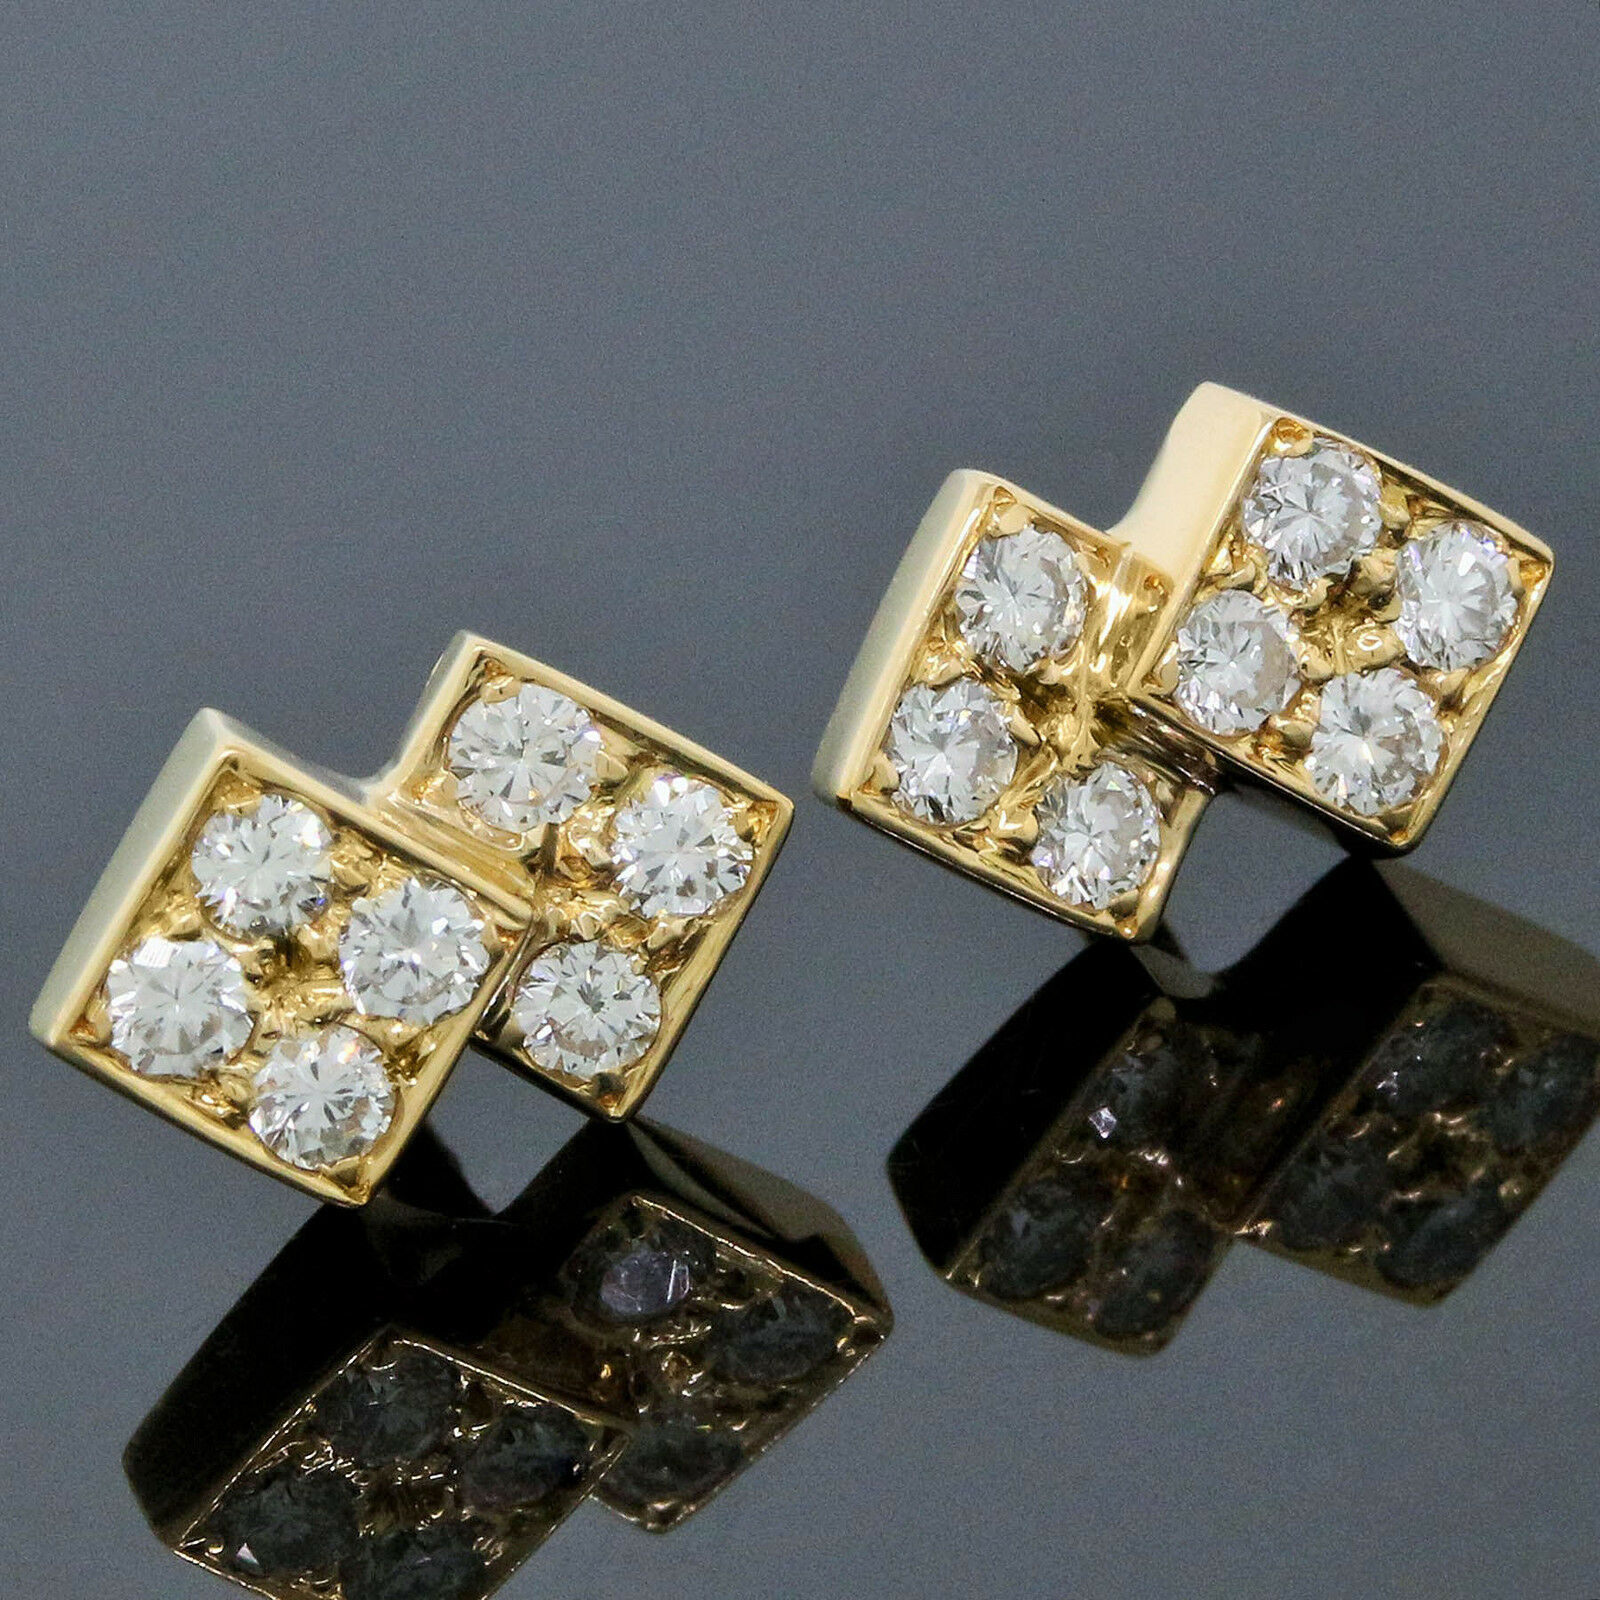 Boucheron 18K Yellow gold 0.42CT Diamond Toi Et Moi Stud Earrings